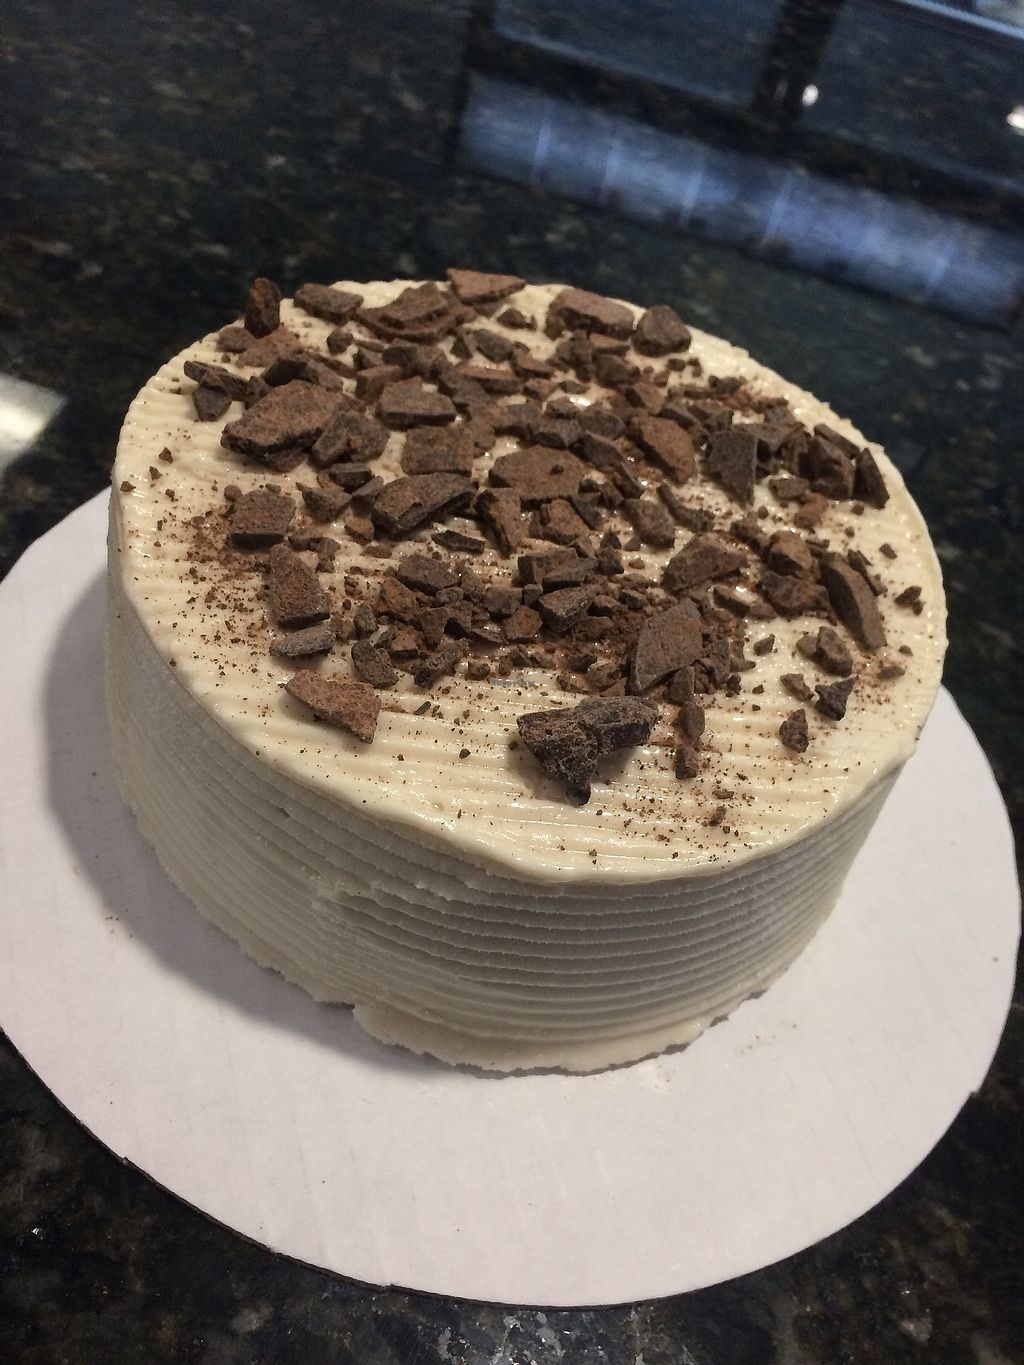 "Photo of D'Lites Shoppe  by <a href=""/members/profile/kamestancik"">kamestancik</a> <br/>coconut nice cream cake with vegan chocolate chunks <br/> March 14, 2018  - <a href='/contact/abuse/image/58486/370691'>Report</a>"